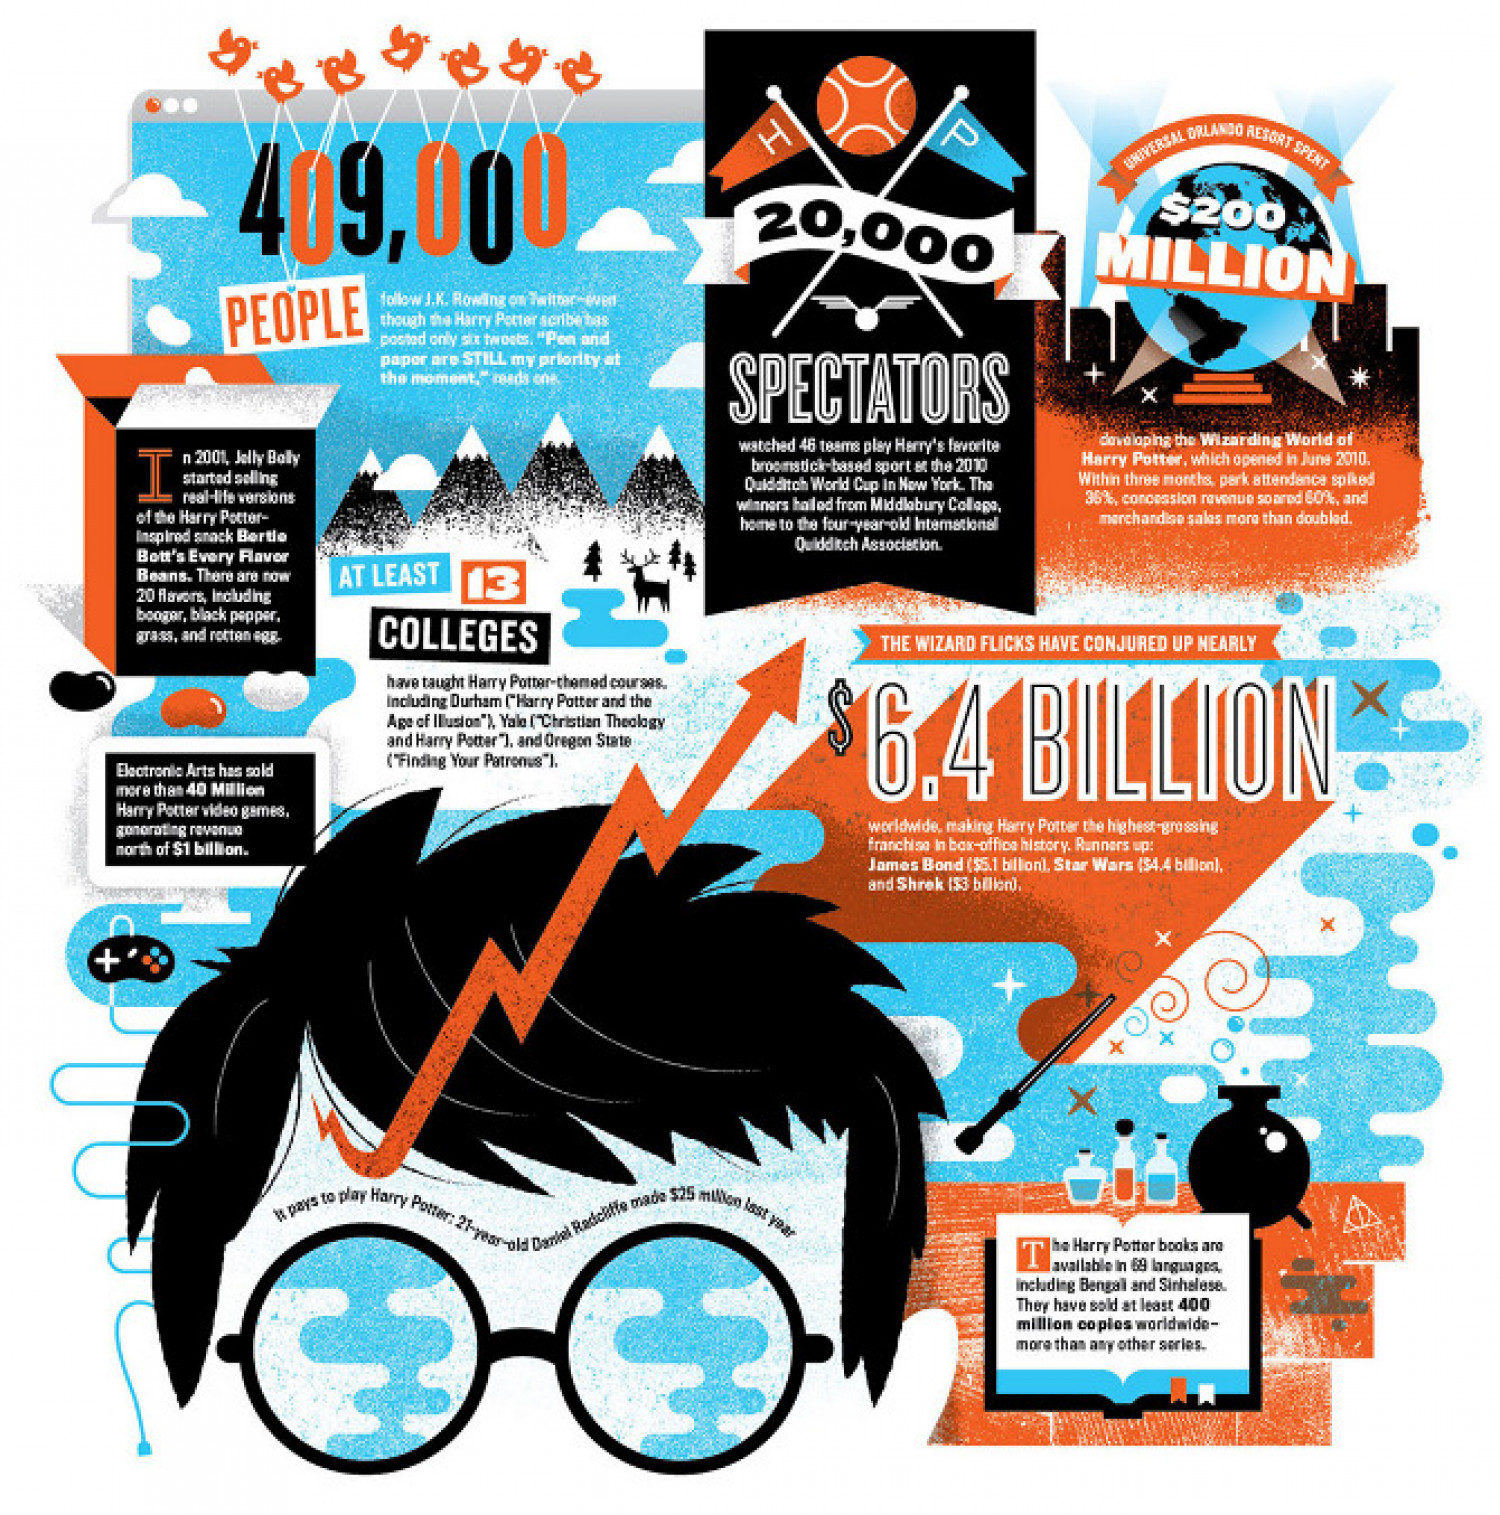 J.K Rowling Popularity Infographic